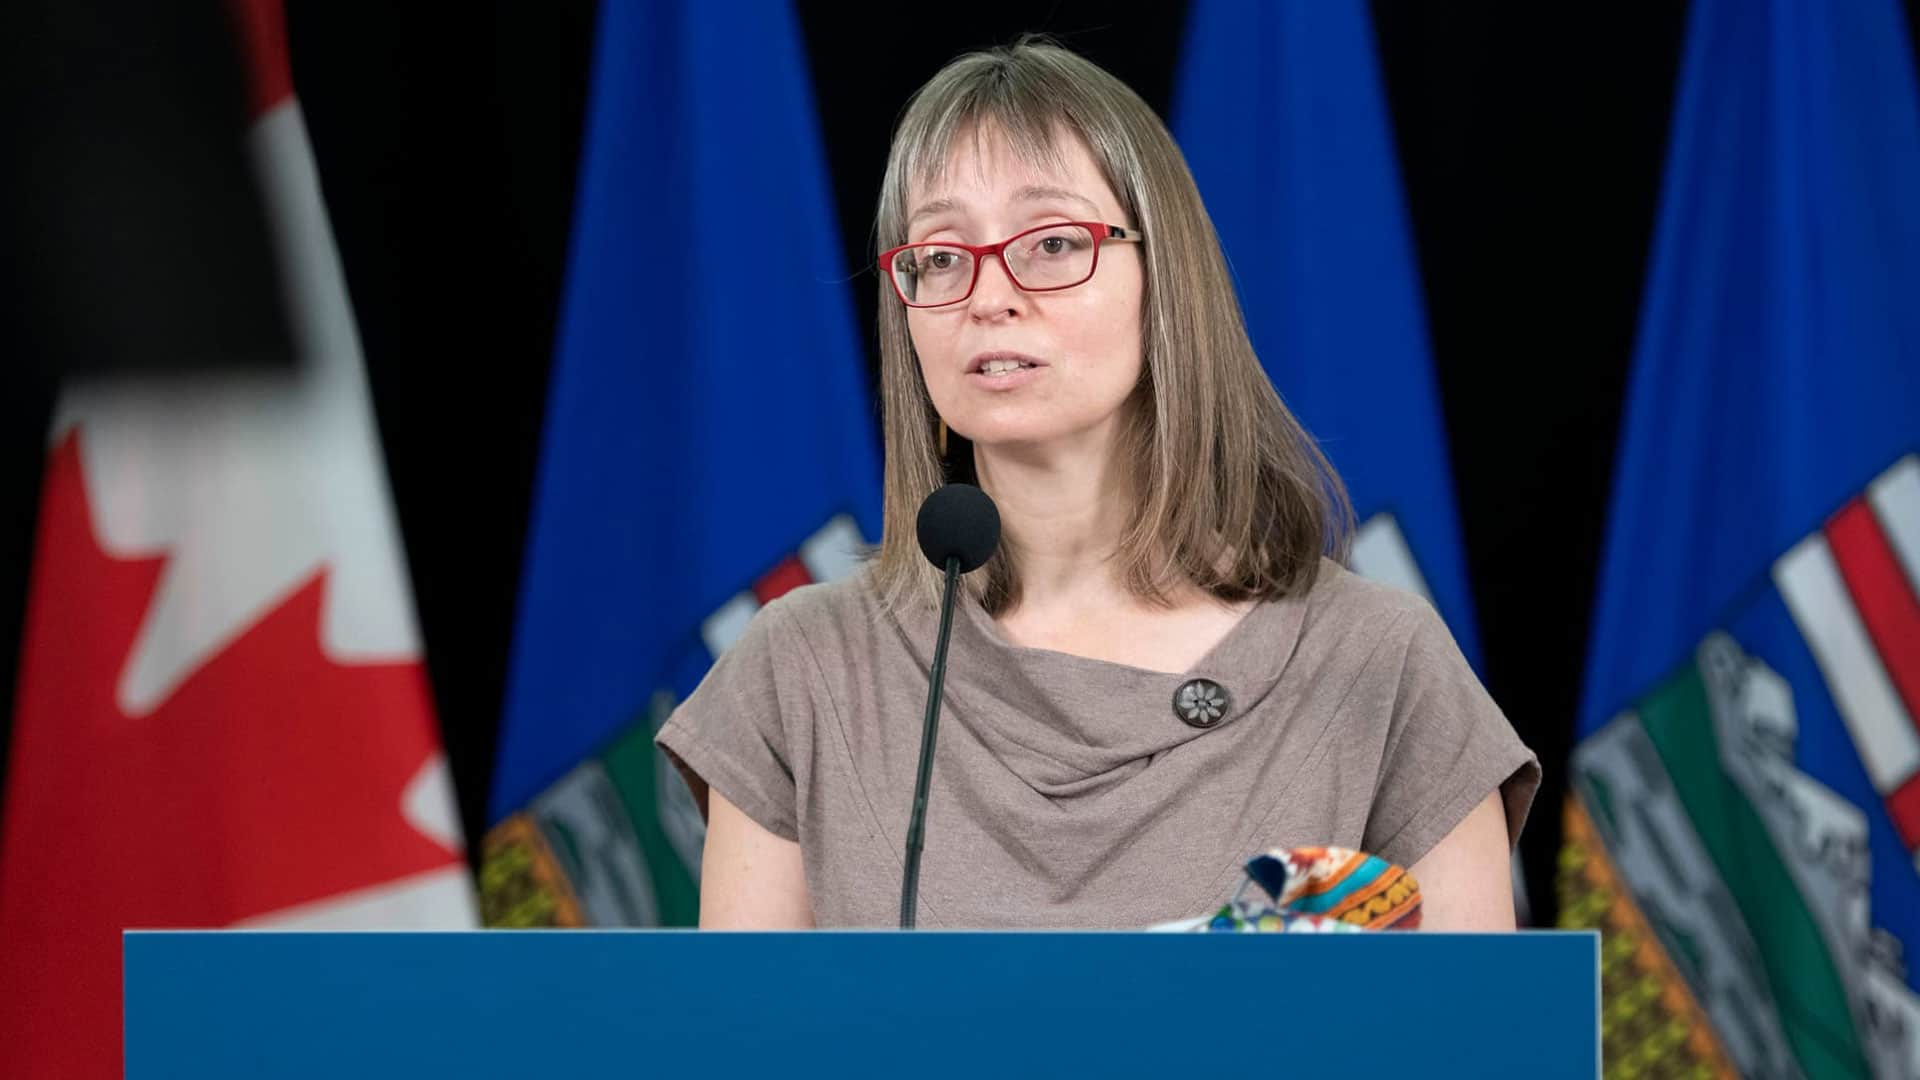 Alberta to ease COVID-19 restrictions on gyms, restaurants, school sports